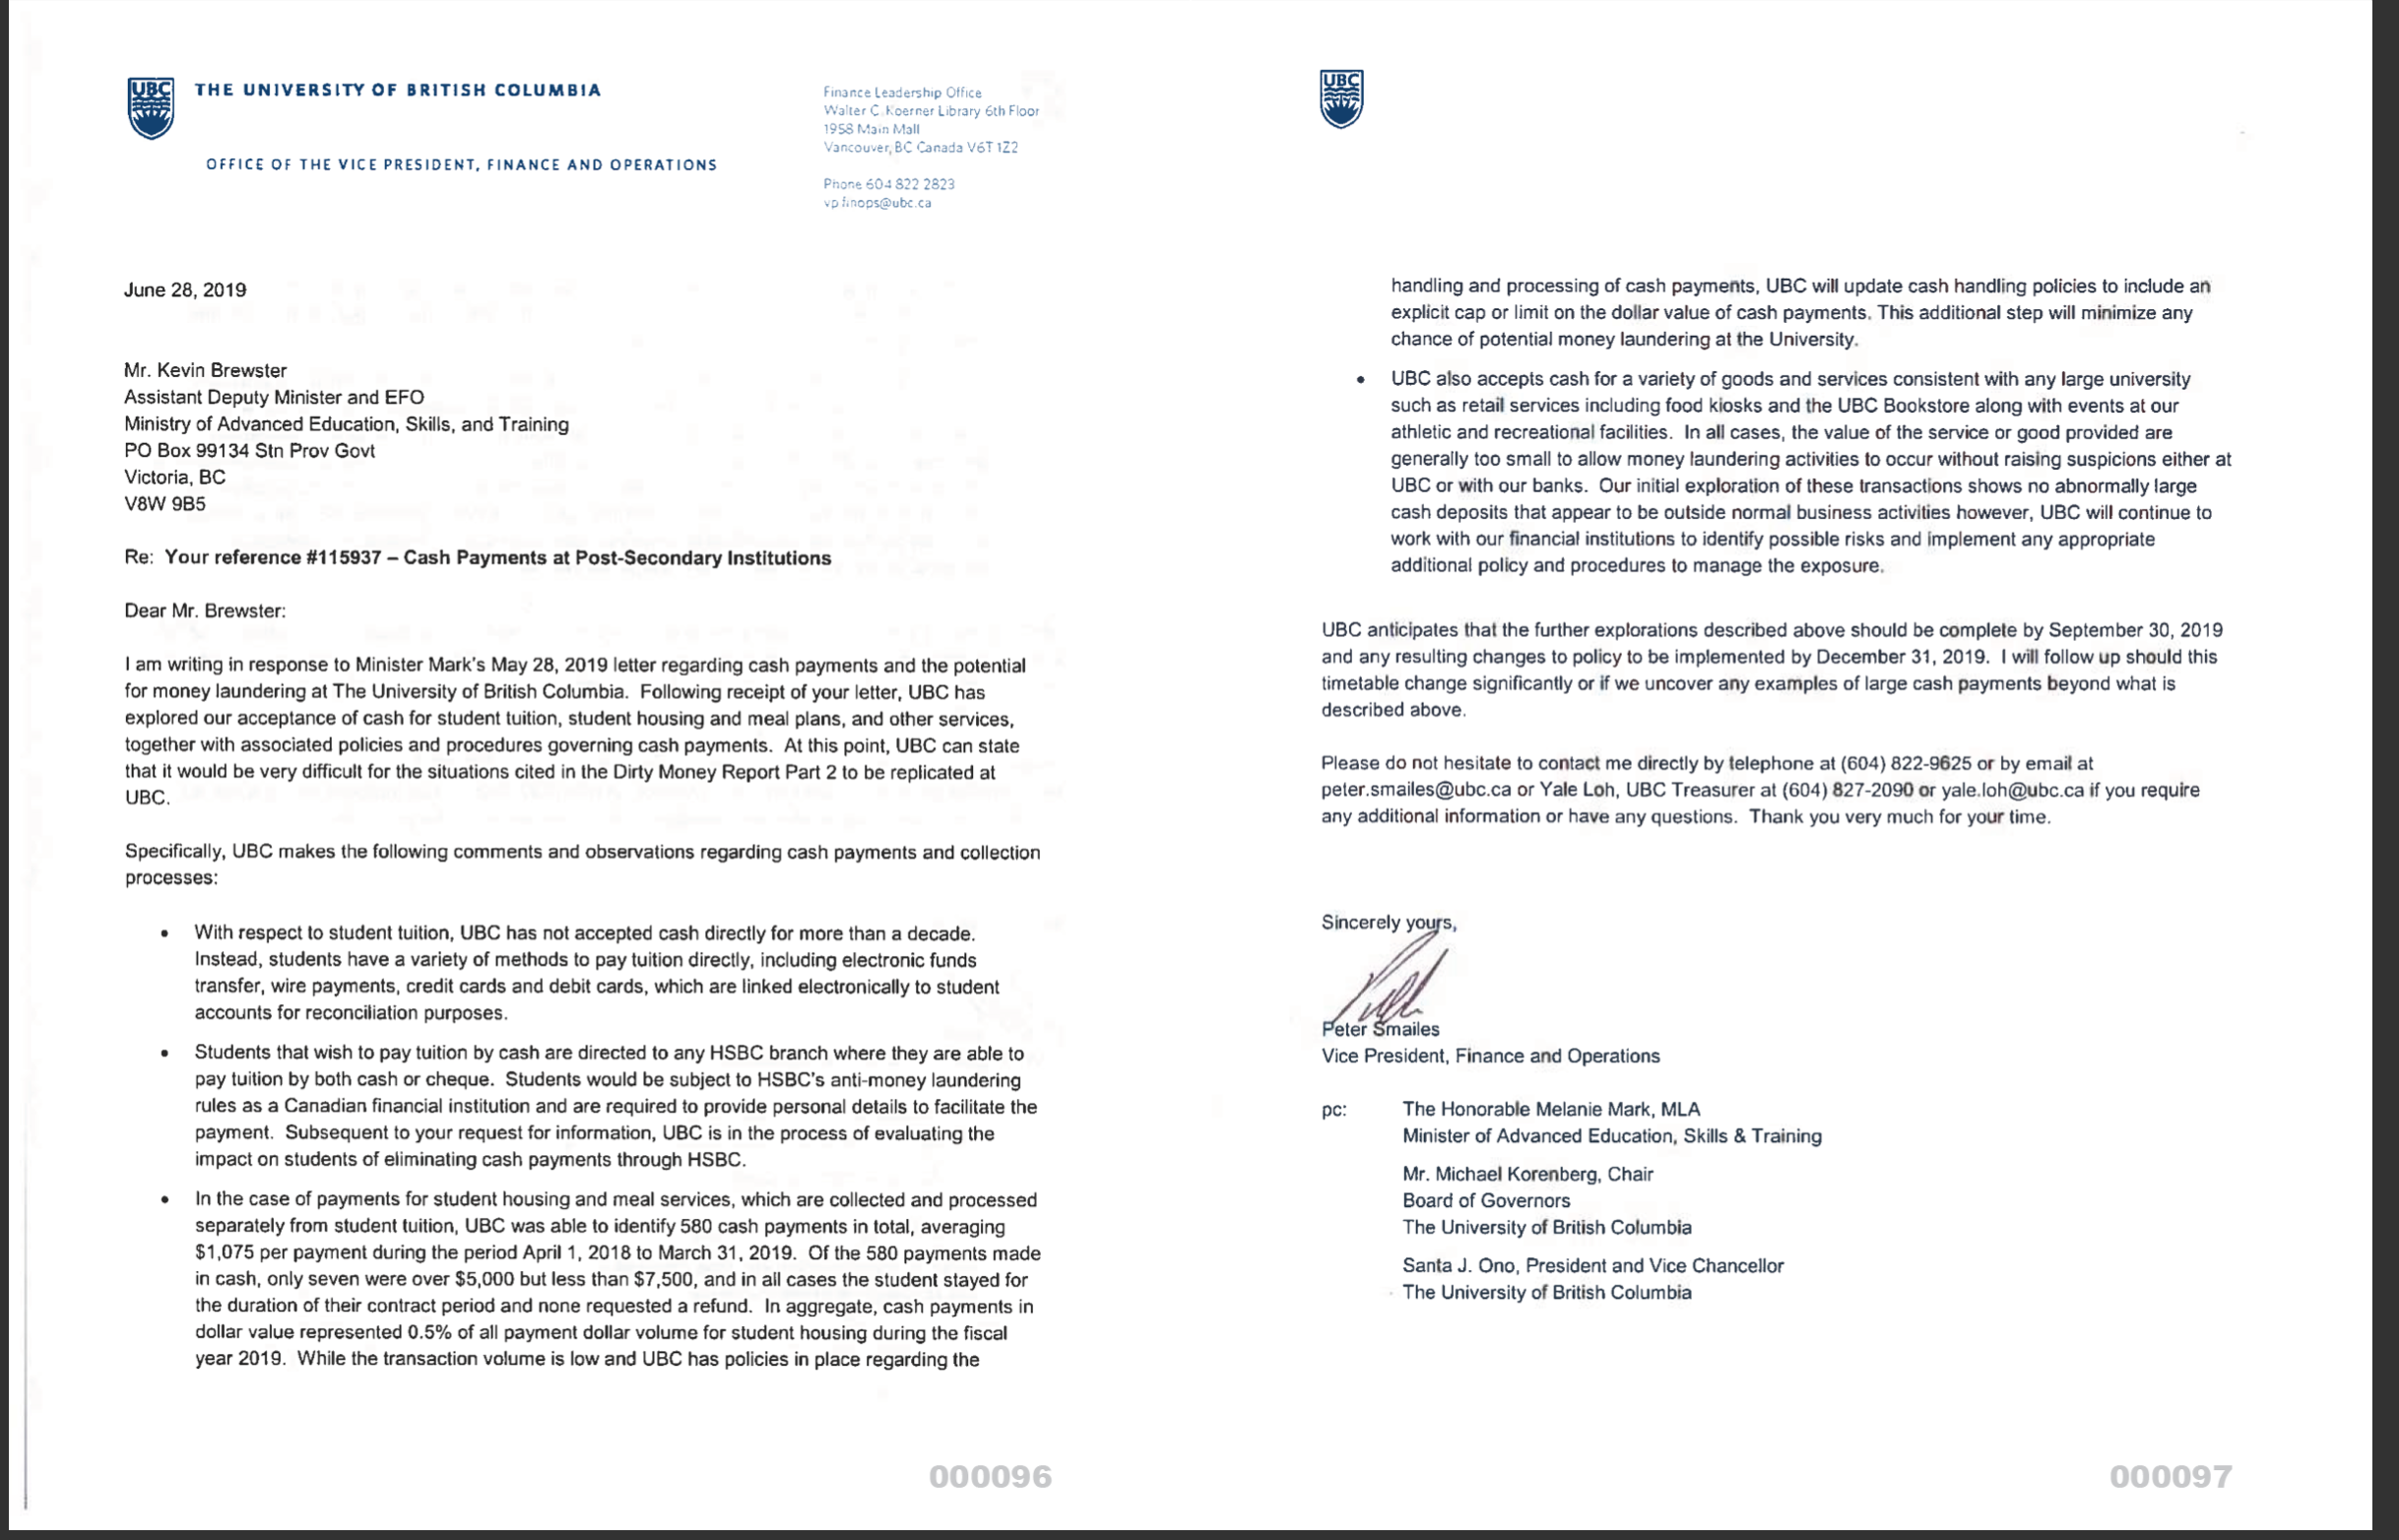 UBC VP Finance Peter Smailes responded to Minister Melanie Mark's letter in June 2019.